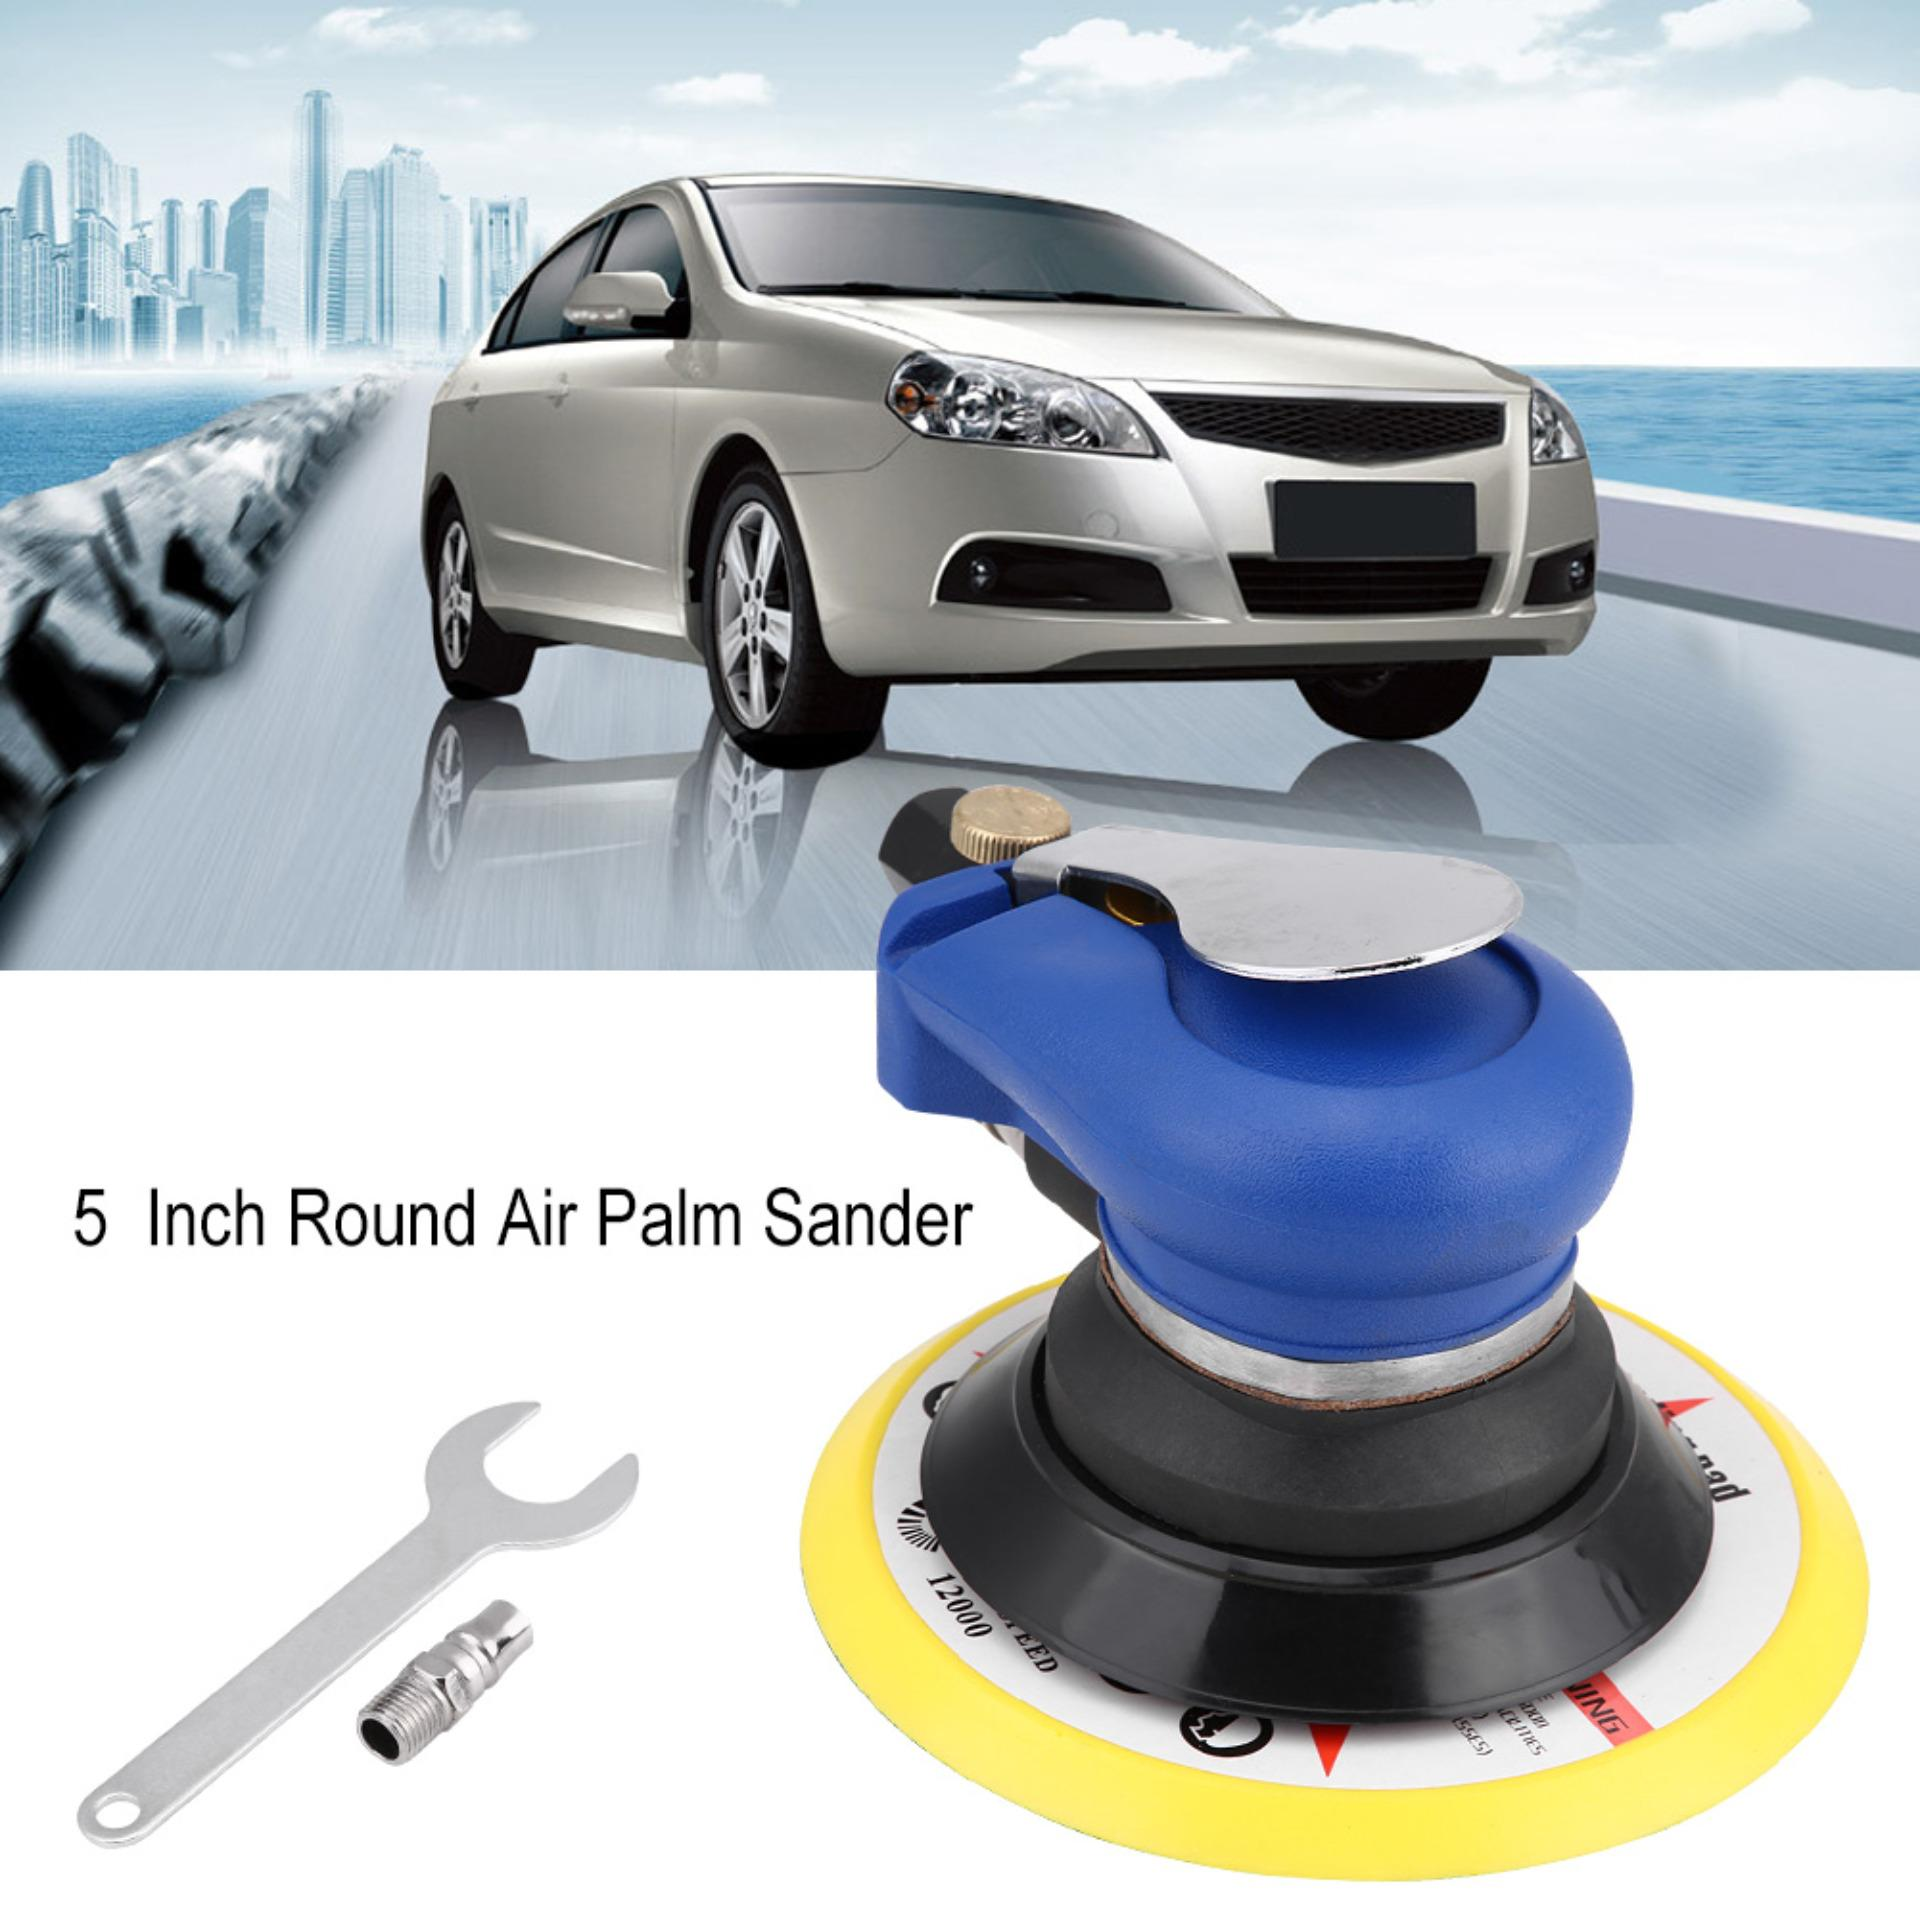 5 Inch Round Air Palm Random Orbital Sander 9000rpm Pneumatic Polisher Hand Sanding Tool - Intl By 1buycart.